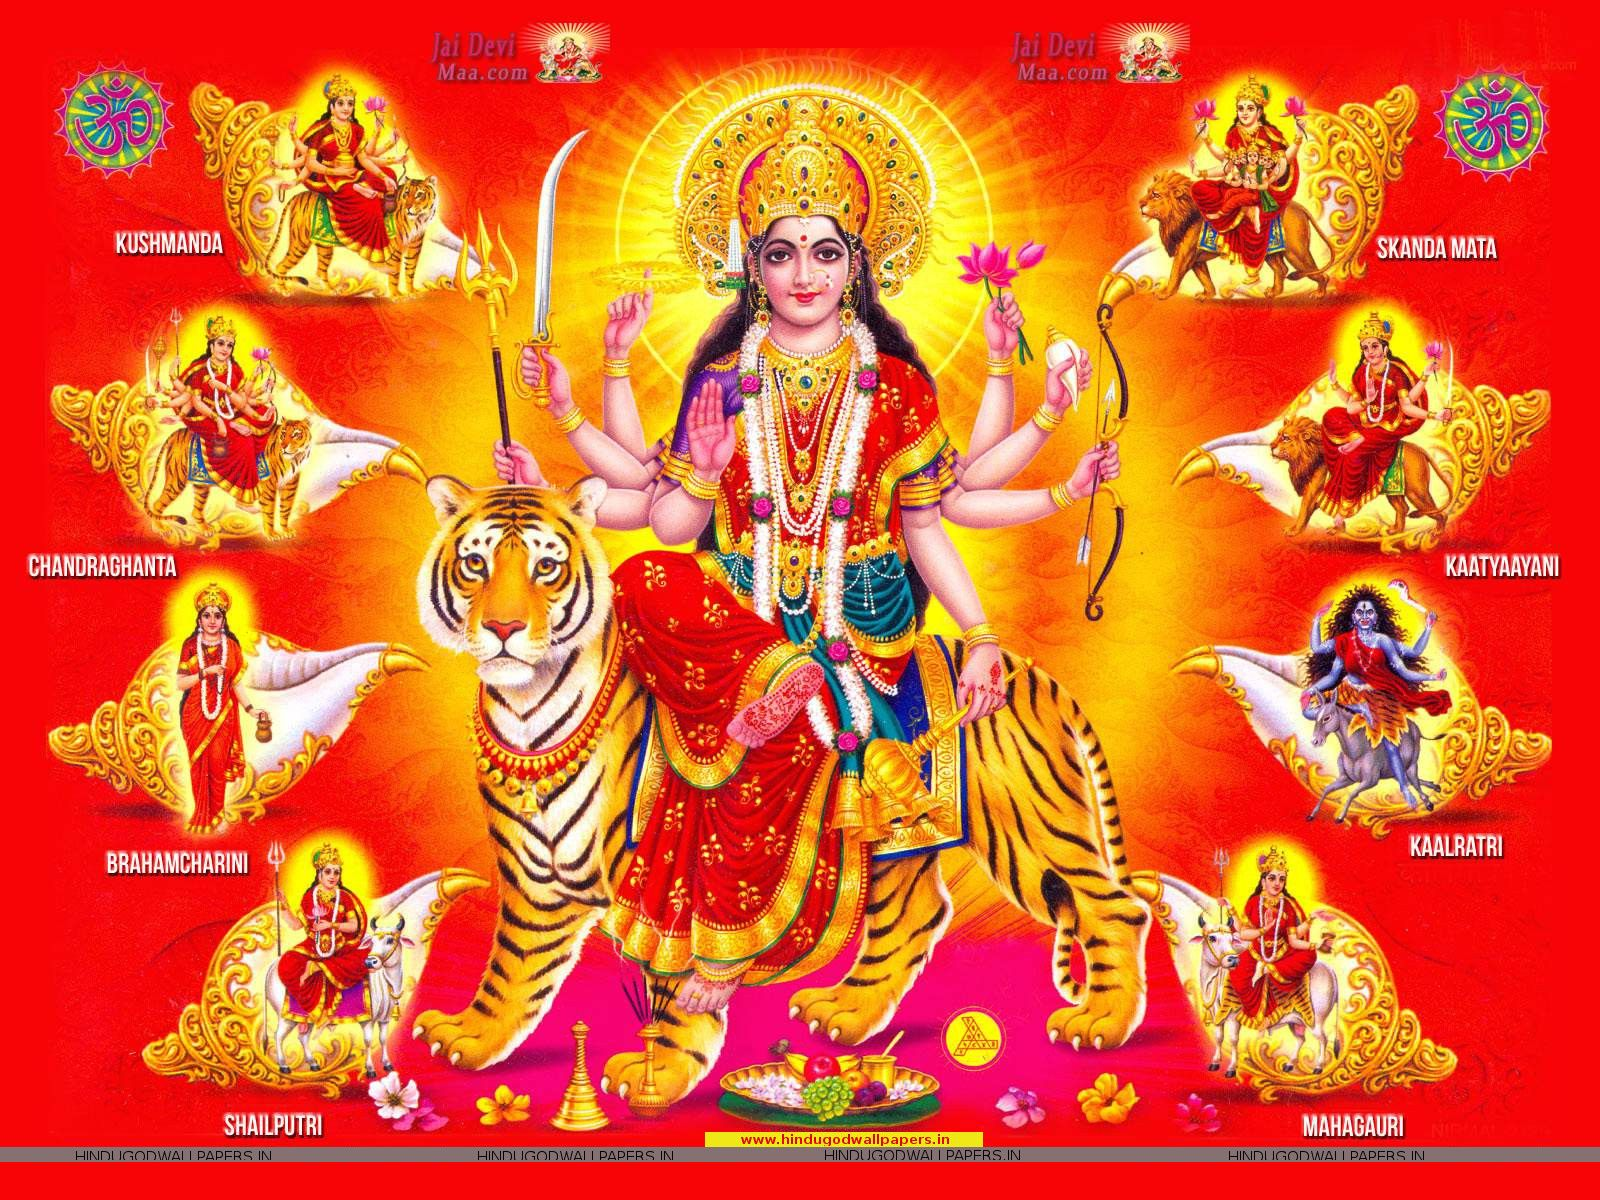 Navratri Wallpaper Full Size Free Download - Hindu God Wallpapers | Durga maa, Durga, Navratri wallpaper